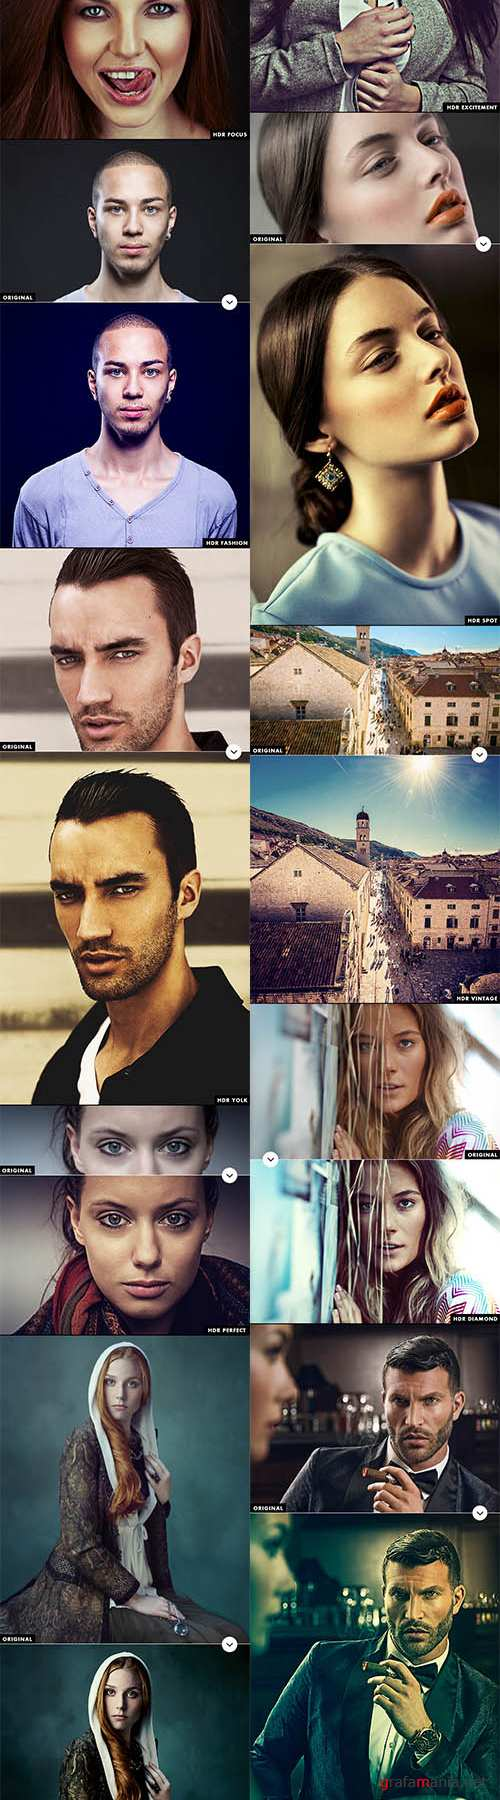 GraphicRiver - 40+ HDR Effects - Photoshop Actions 10052544